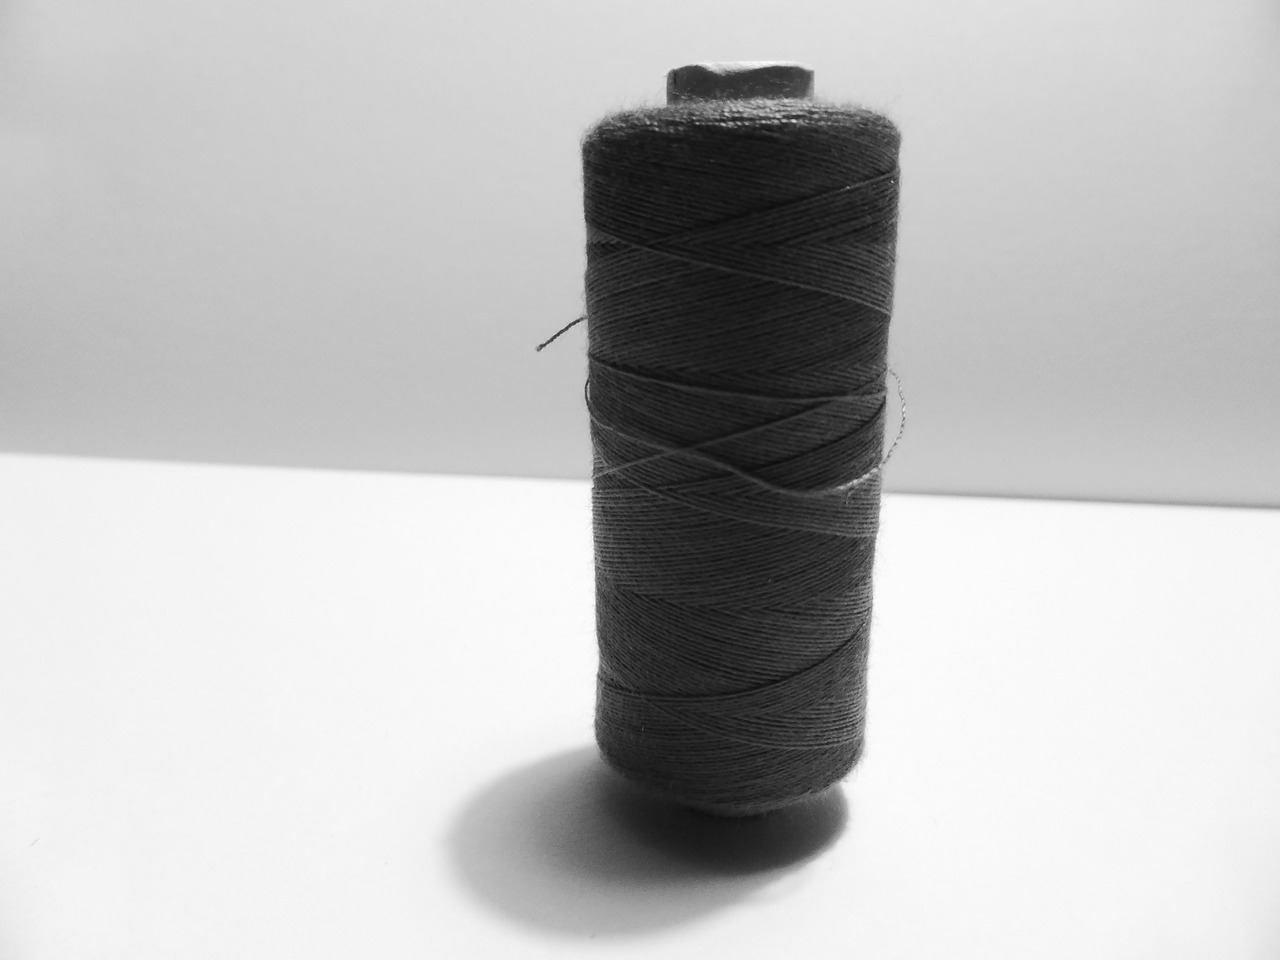 bobbin role thread free photo